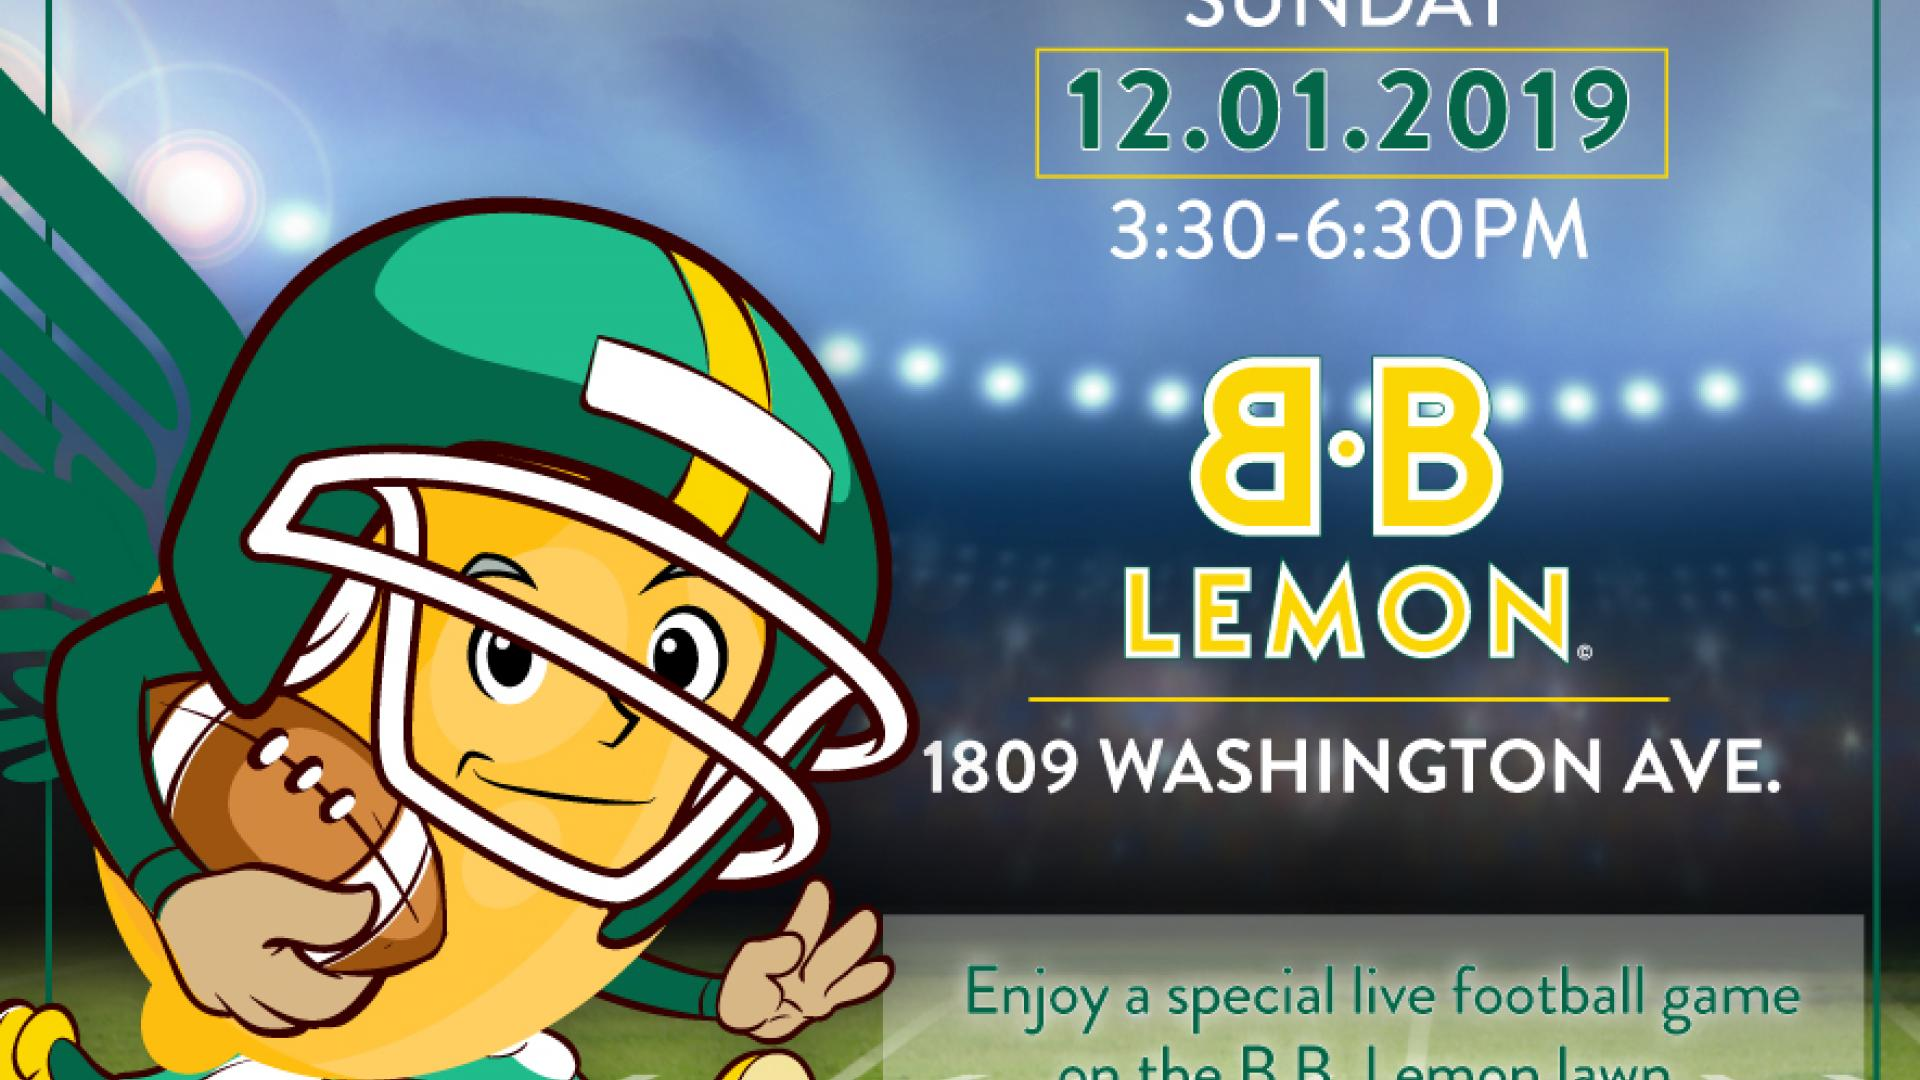 BB Lemon Tailgate Party